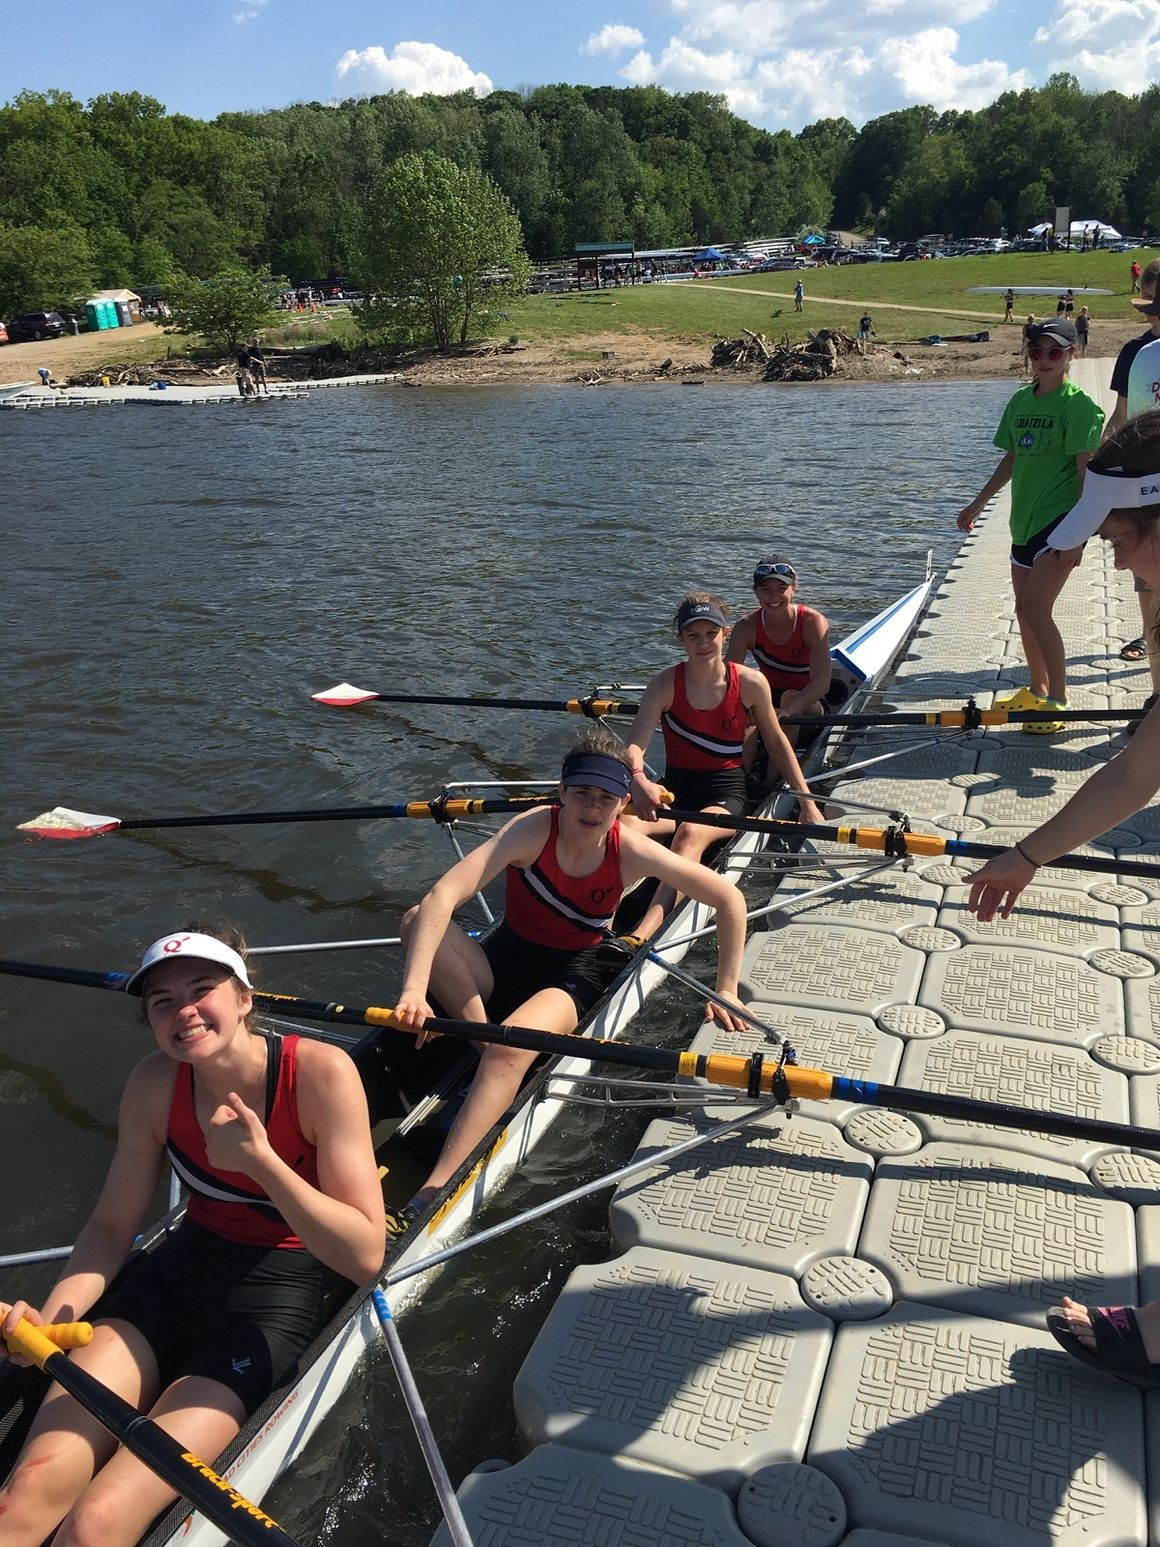 On the water: Q-C program gathers rowing enthusiasts